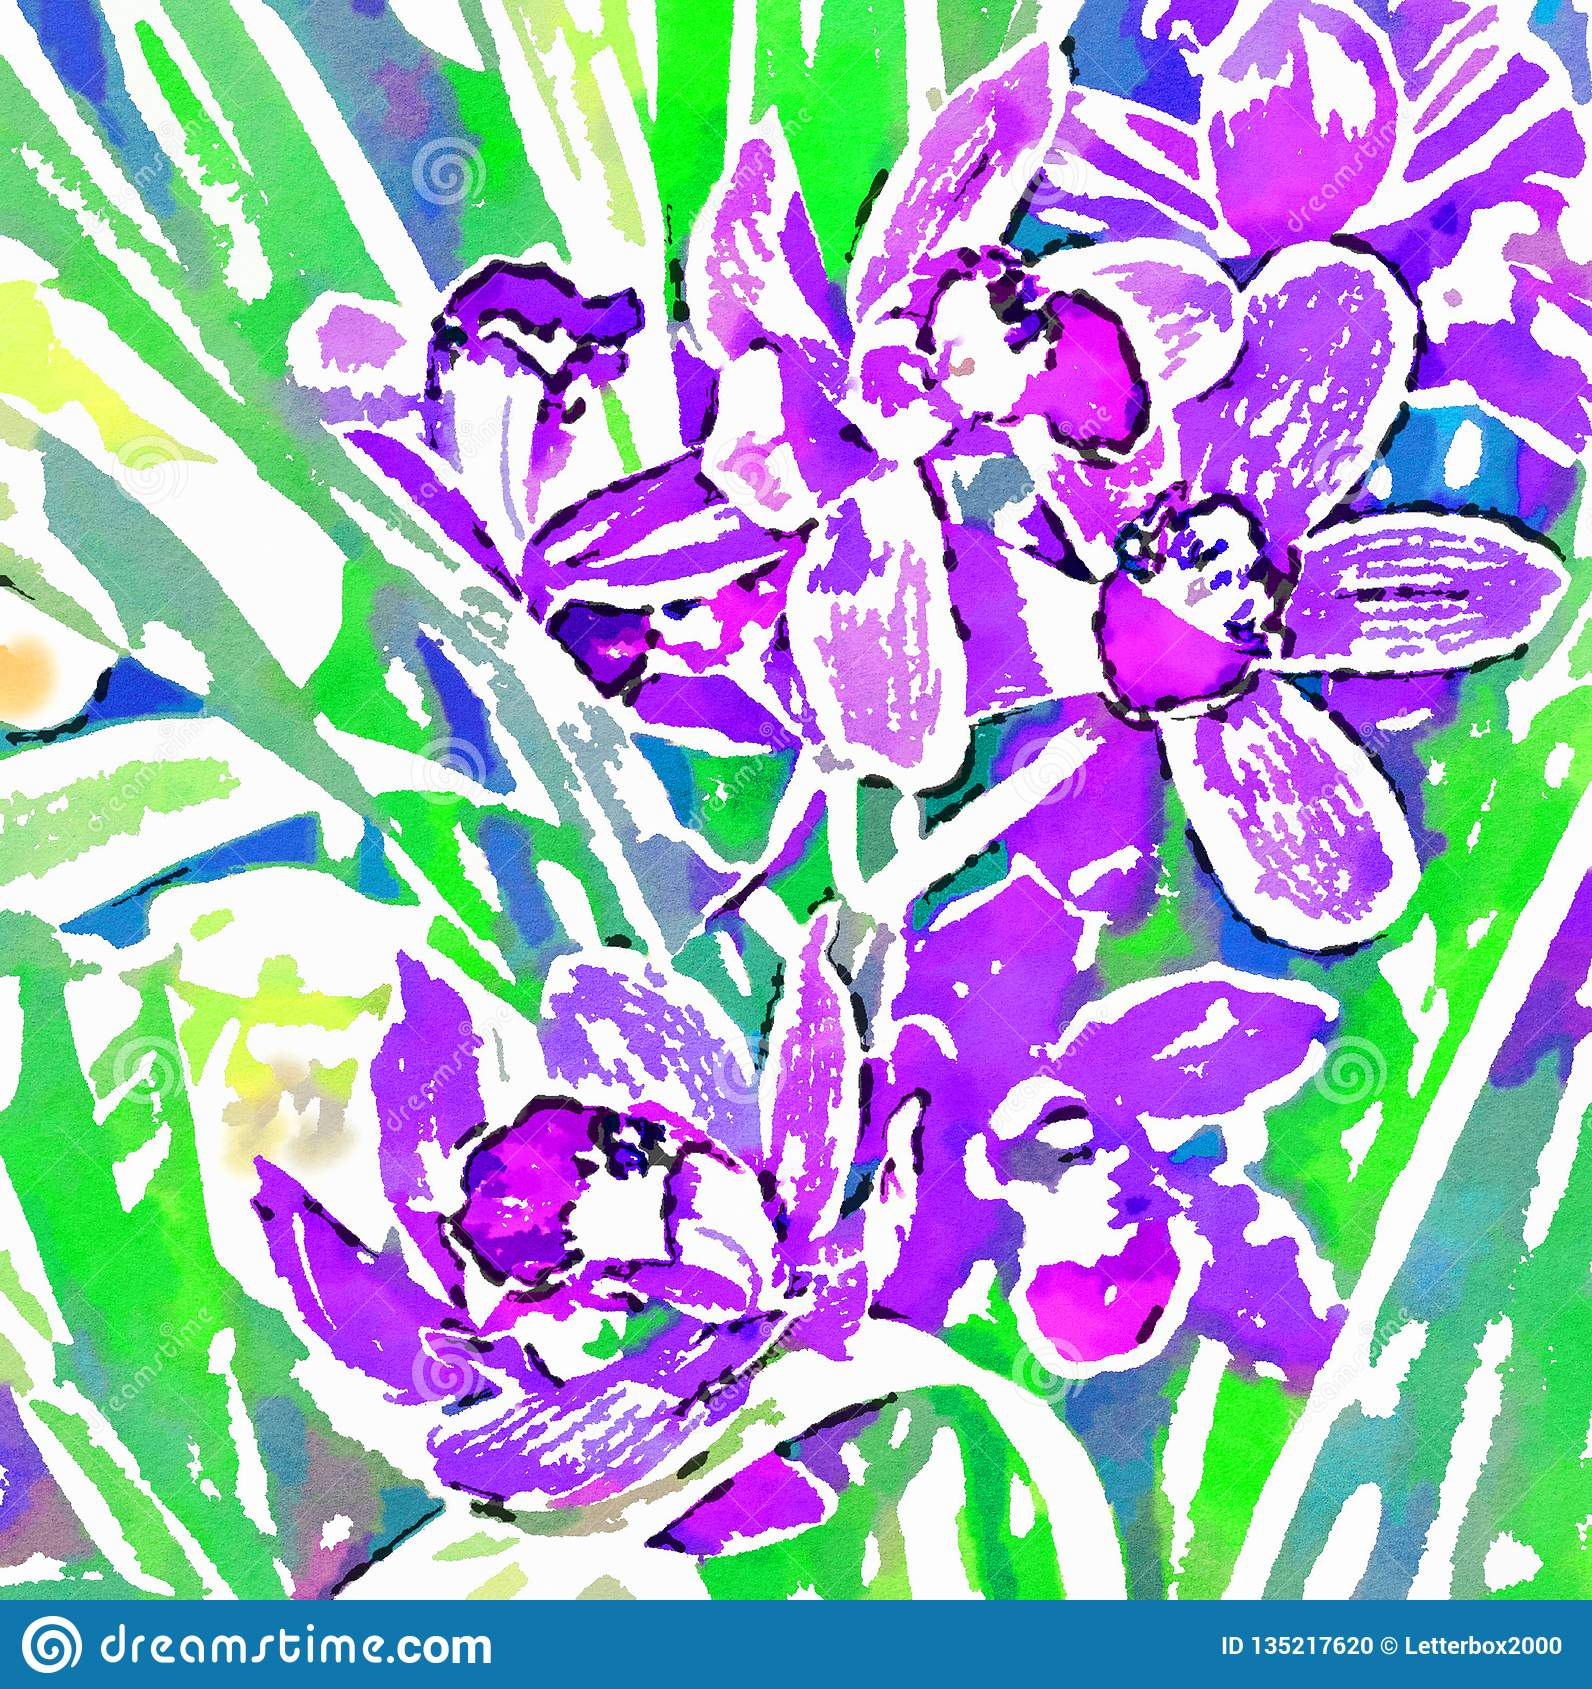 Orchid. Watercolor stylization. Digital image.